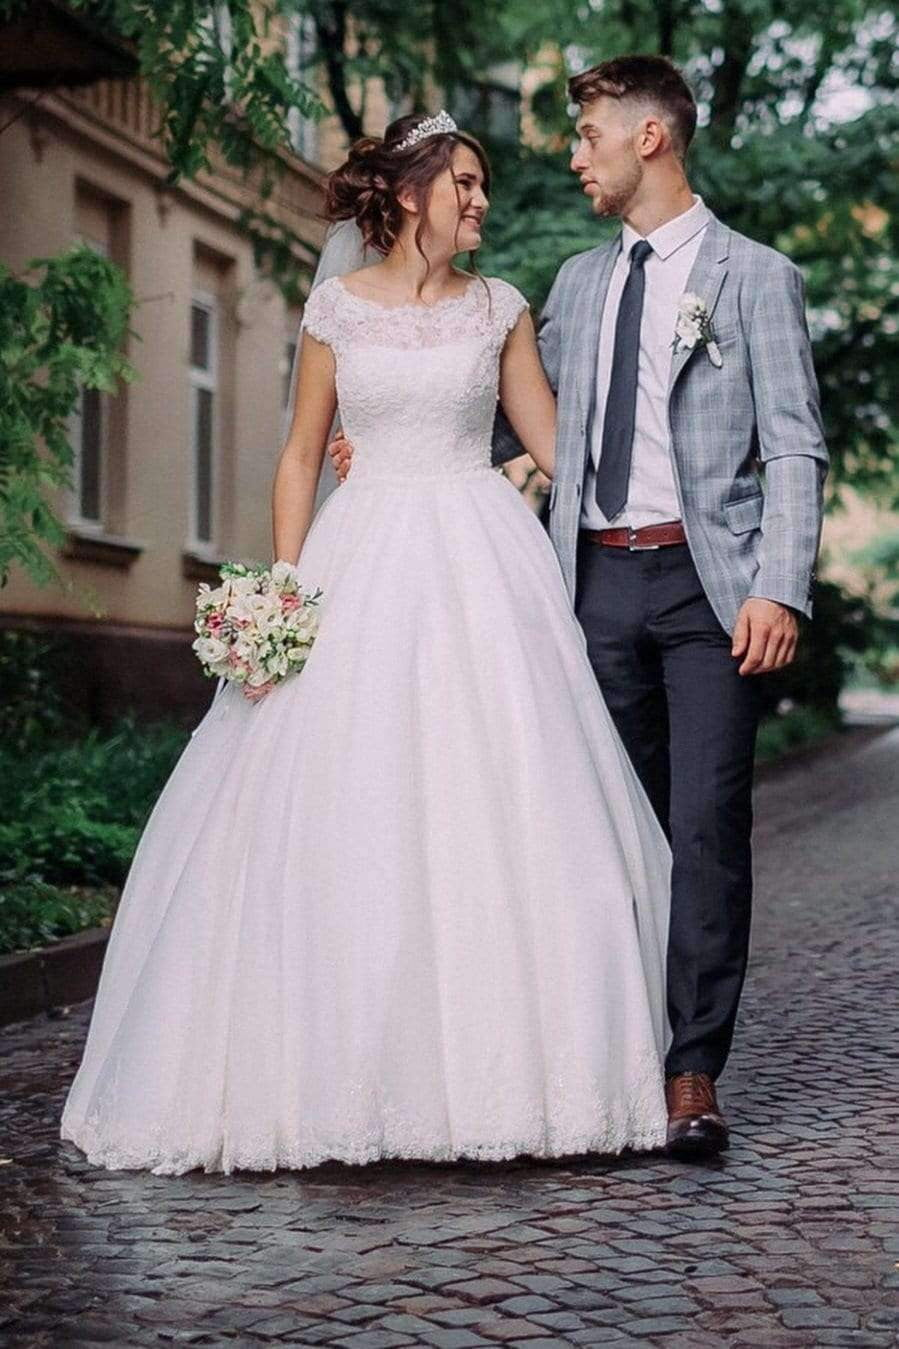 Round Neck Cap Sleeves Appliques Lace Ball Gowns Wedding Dresses W573